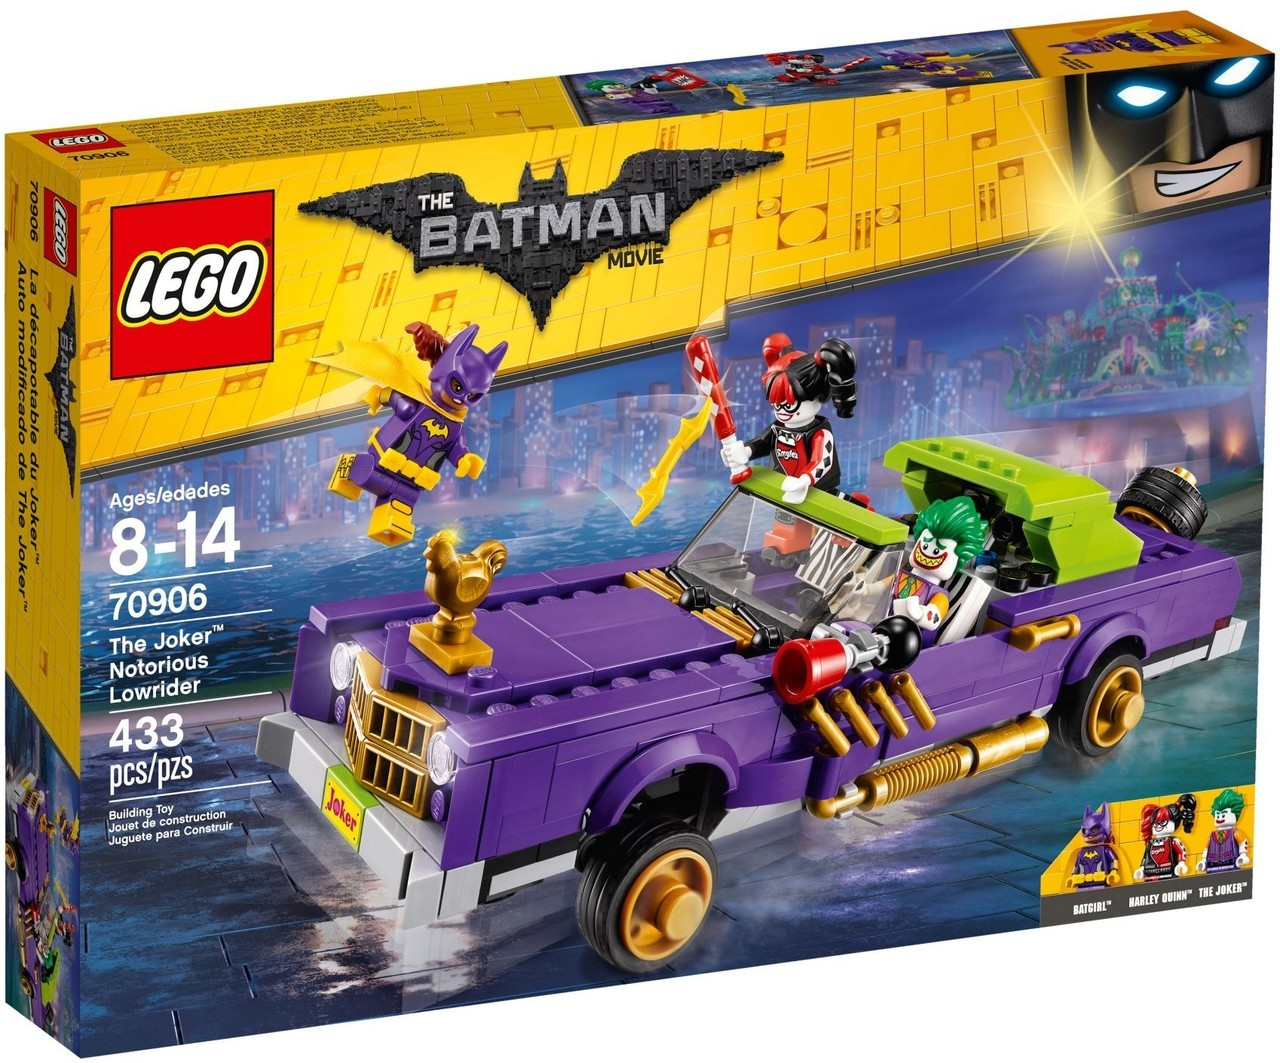 The Joker Notorious Lowrider 70906